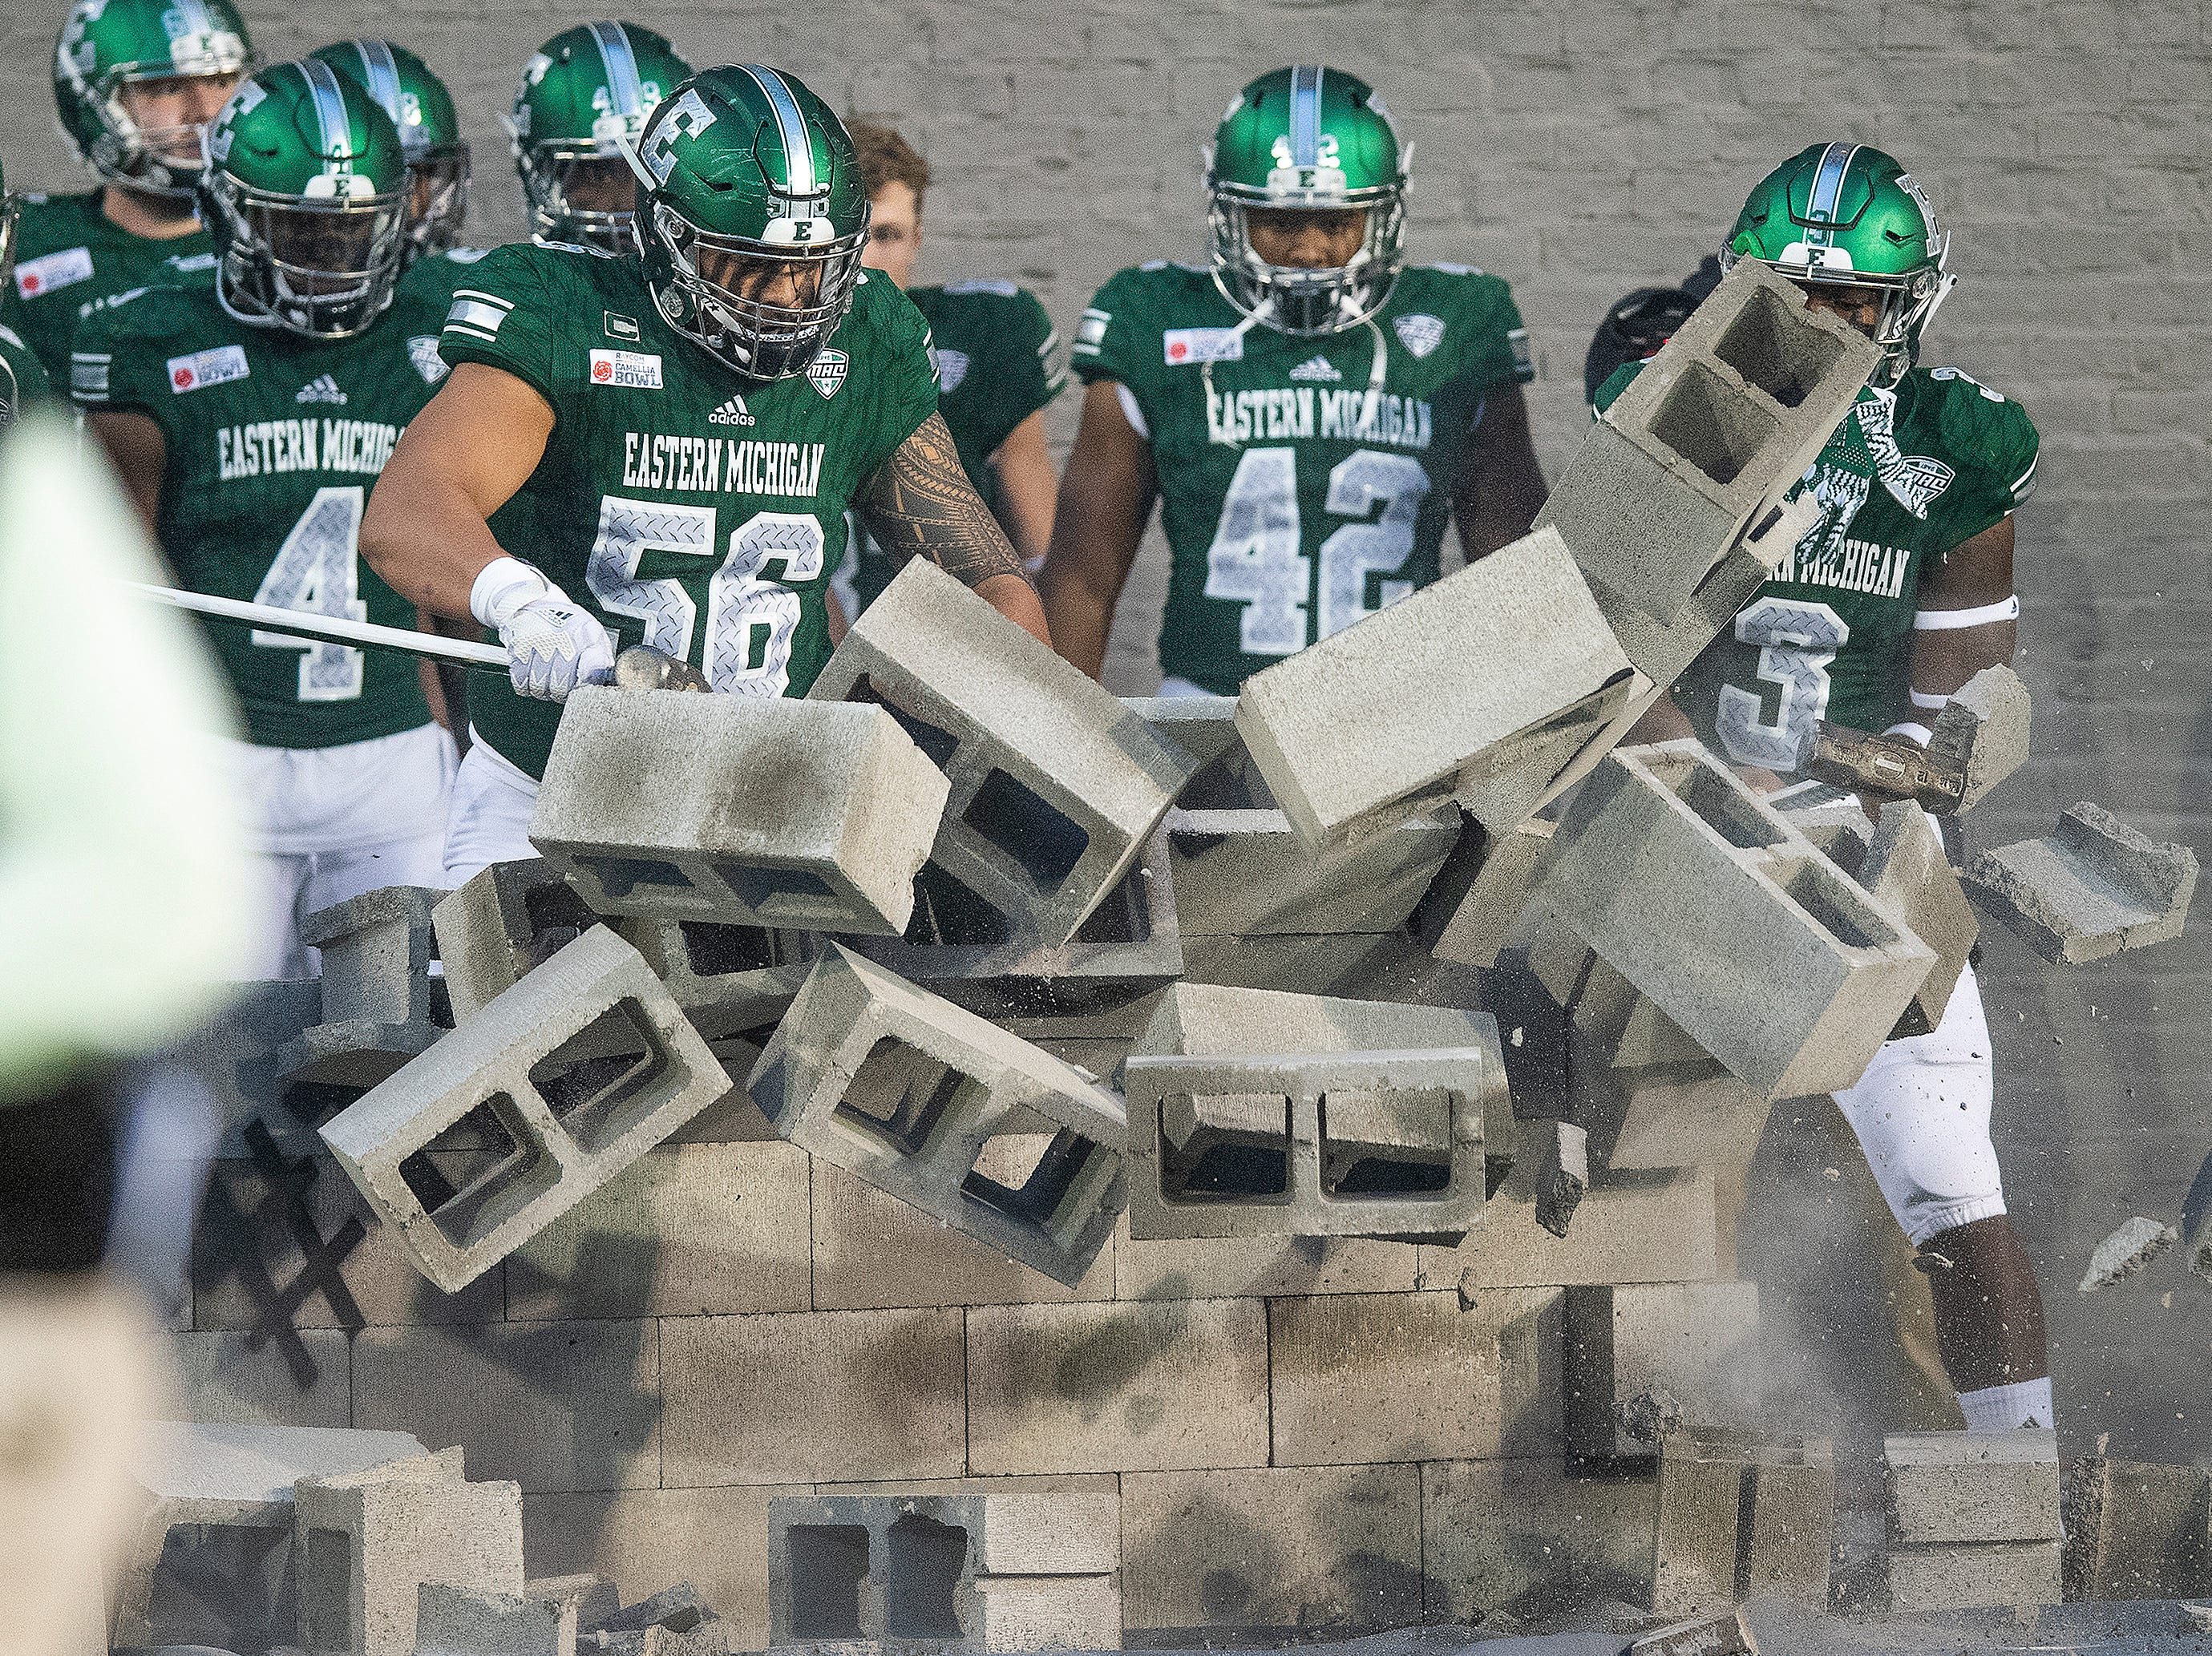 Eastern Michigan comes through a wall as they take the field for the Raycom Media  Camellia Bowl held at Cramton Bowl in Montgomery, Ala., on Saturday December 15, 2018.